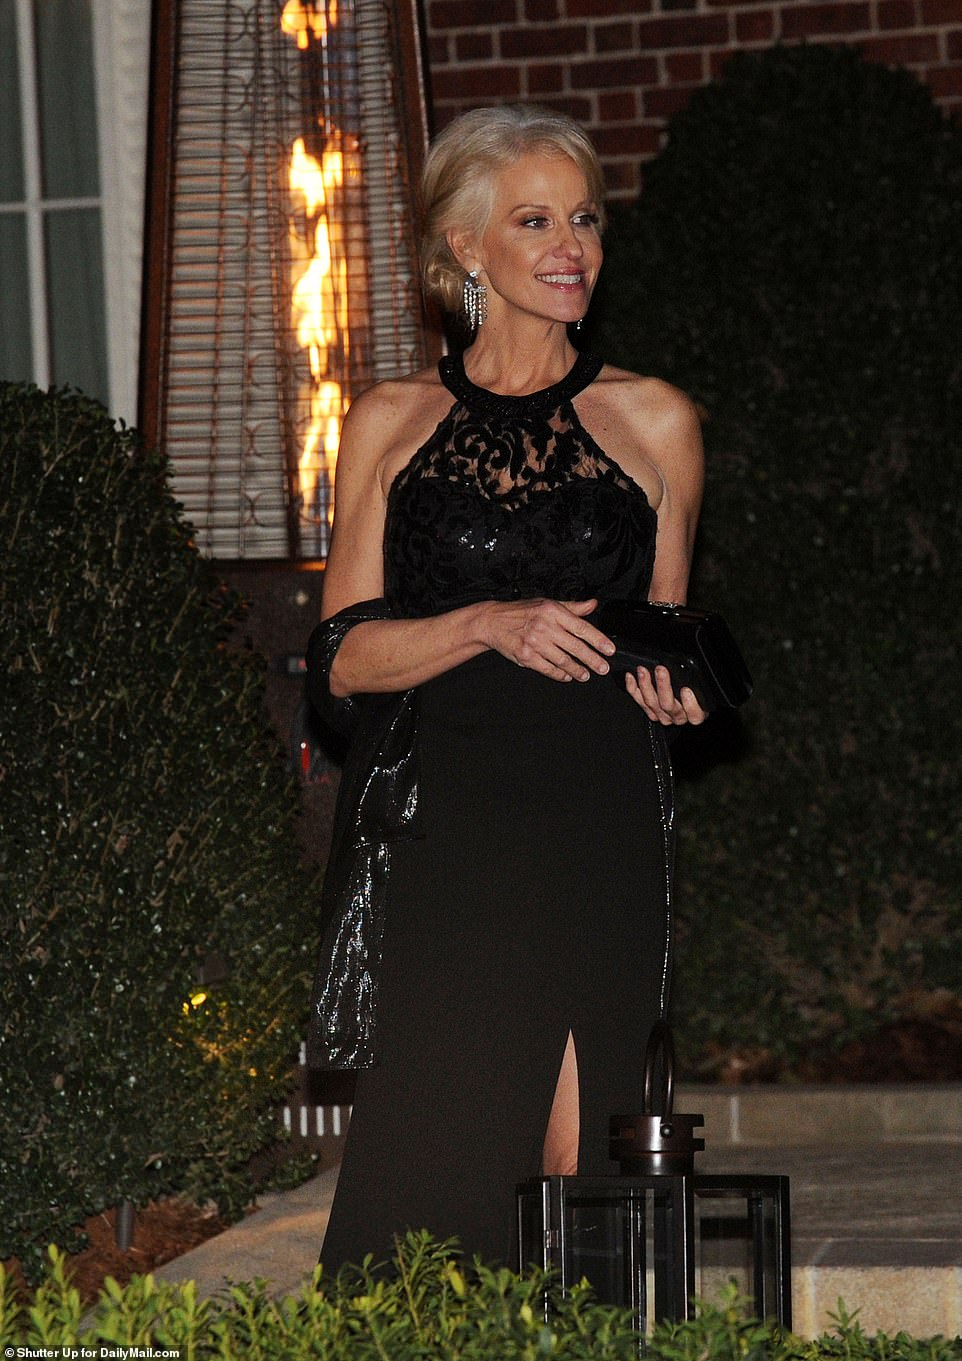 White House Adviser Kellyanne Conway also attended the fête sporting an elegant black halter dress for the occasion